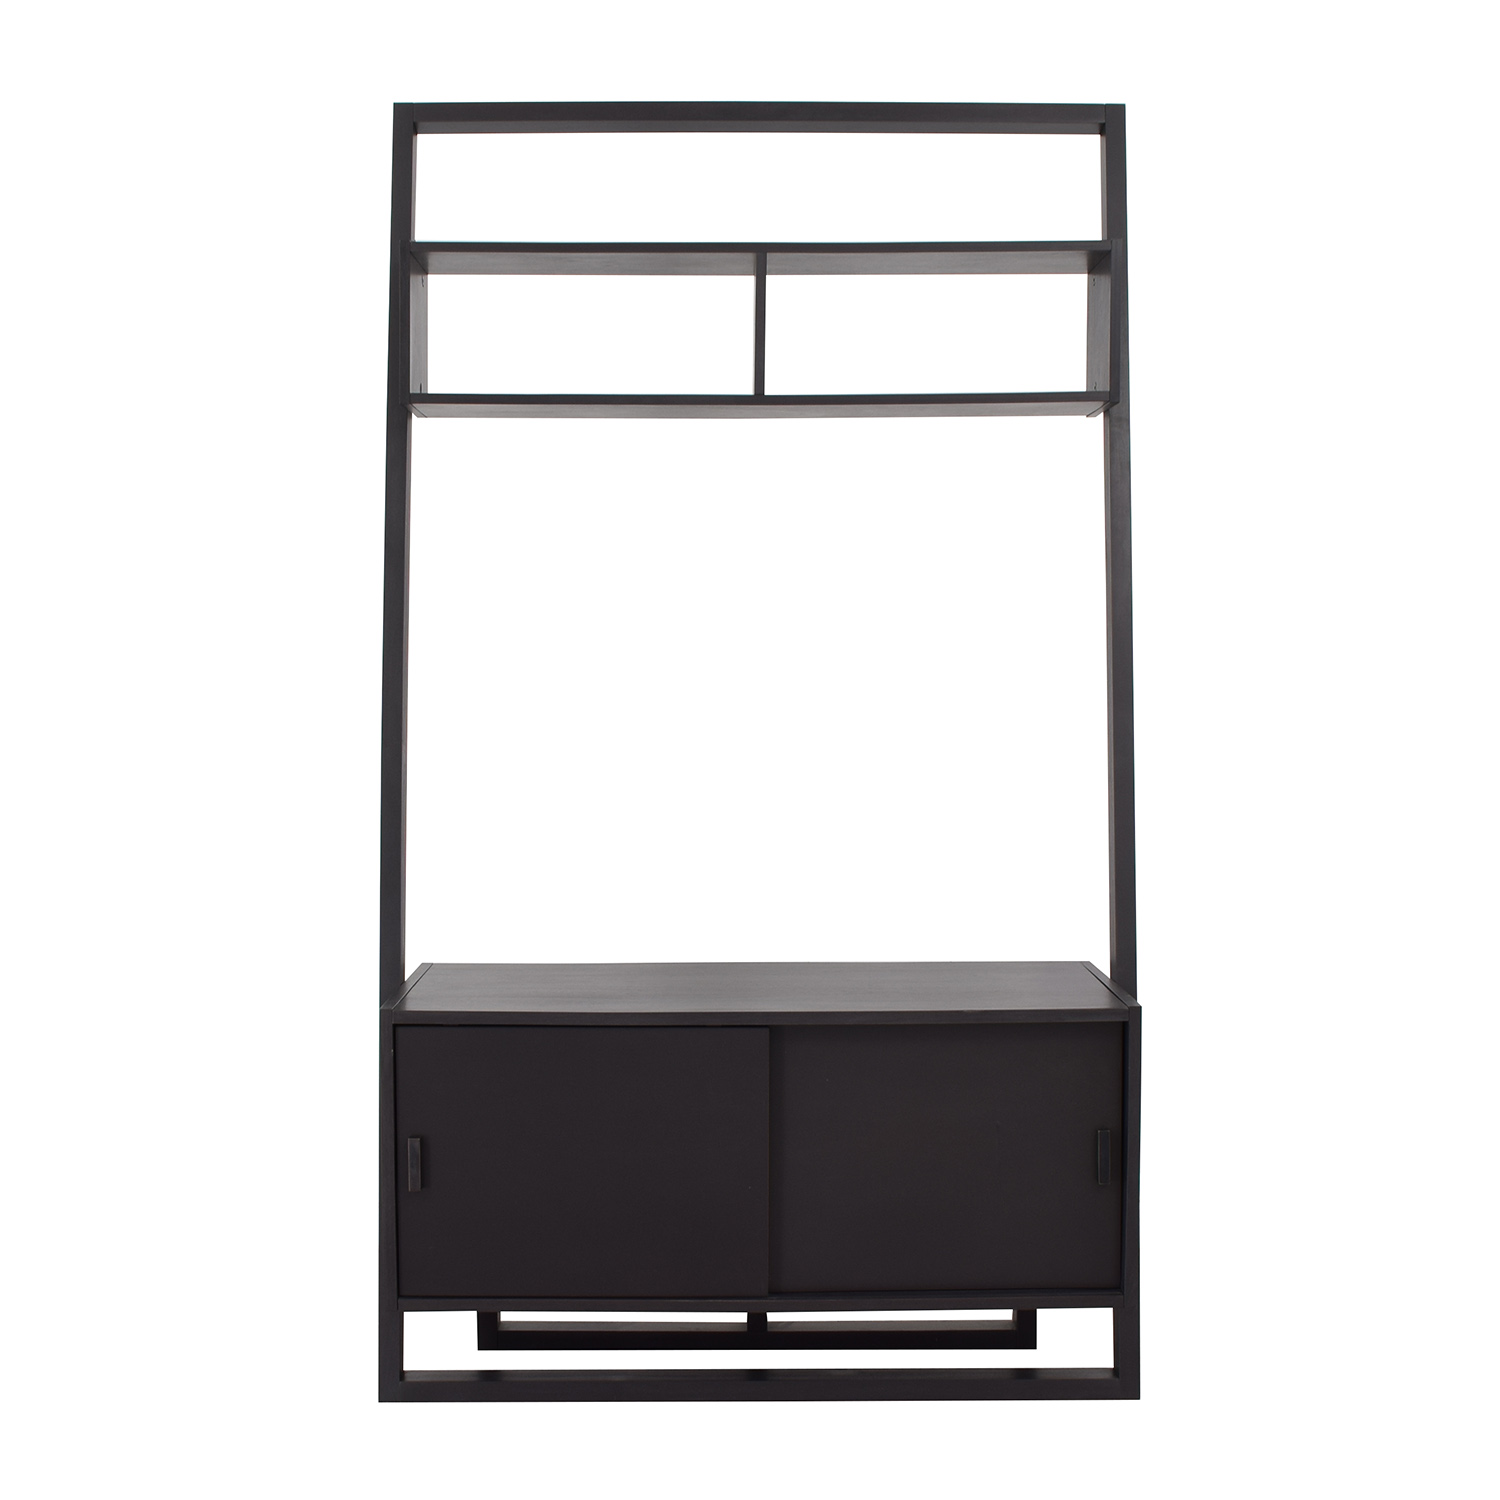 Crate & Barrel Crate & Barrel Sloane Leaning Media Stand coupon